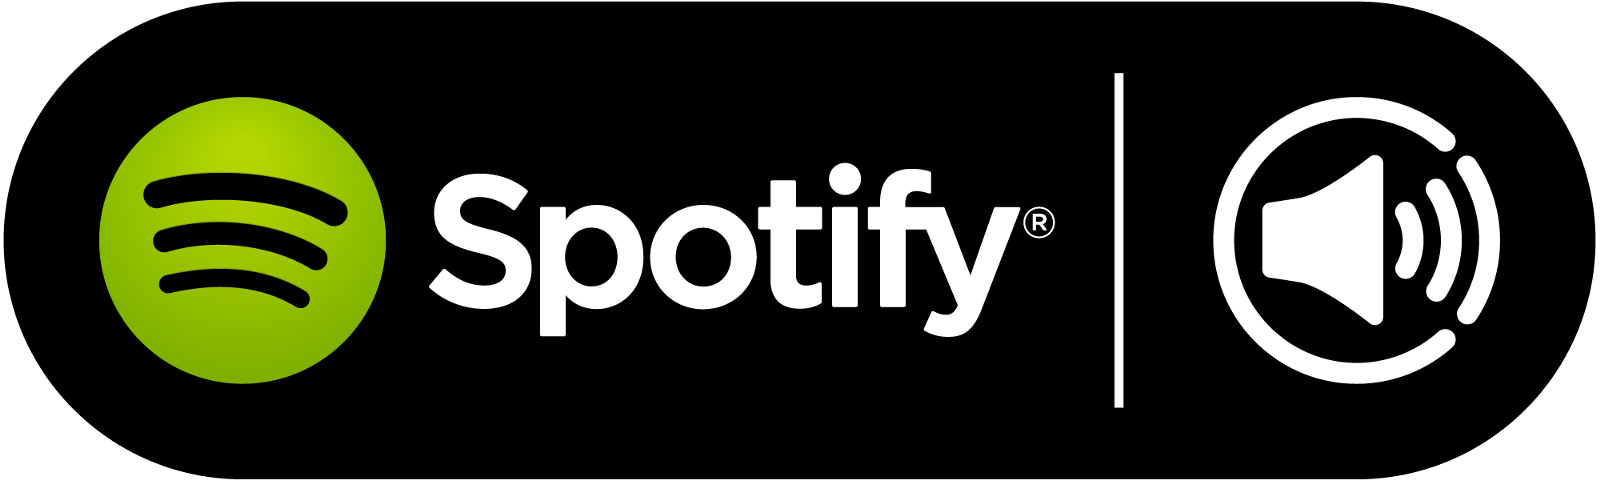 Why Spotify Went to the Dark Side - ProductCoalition.com